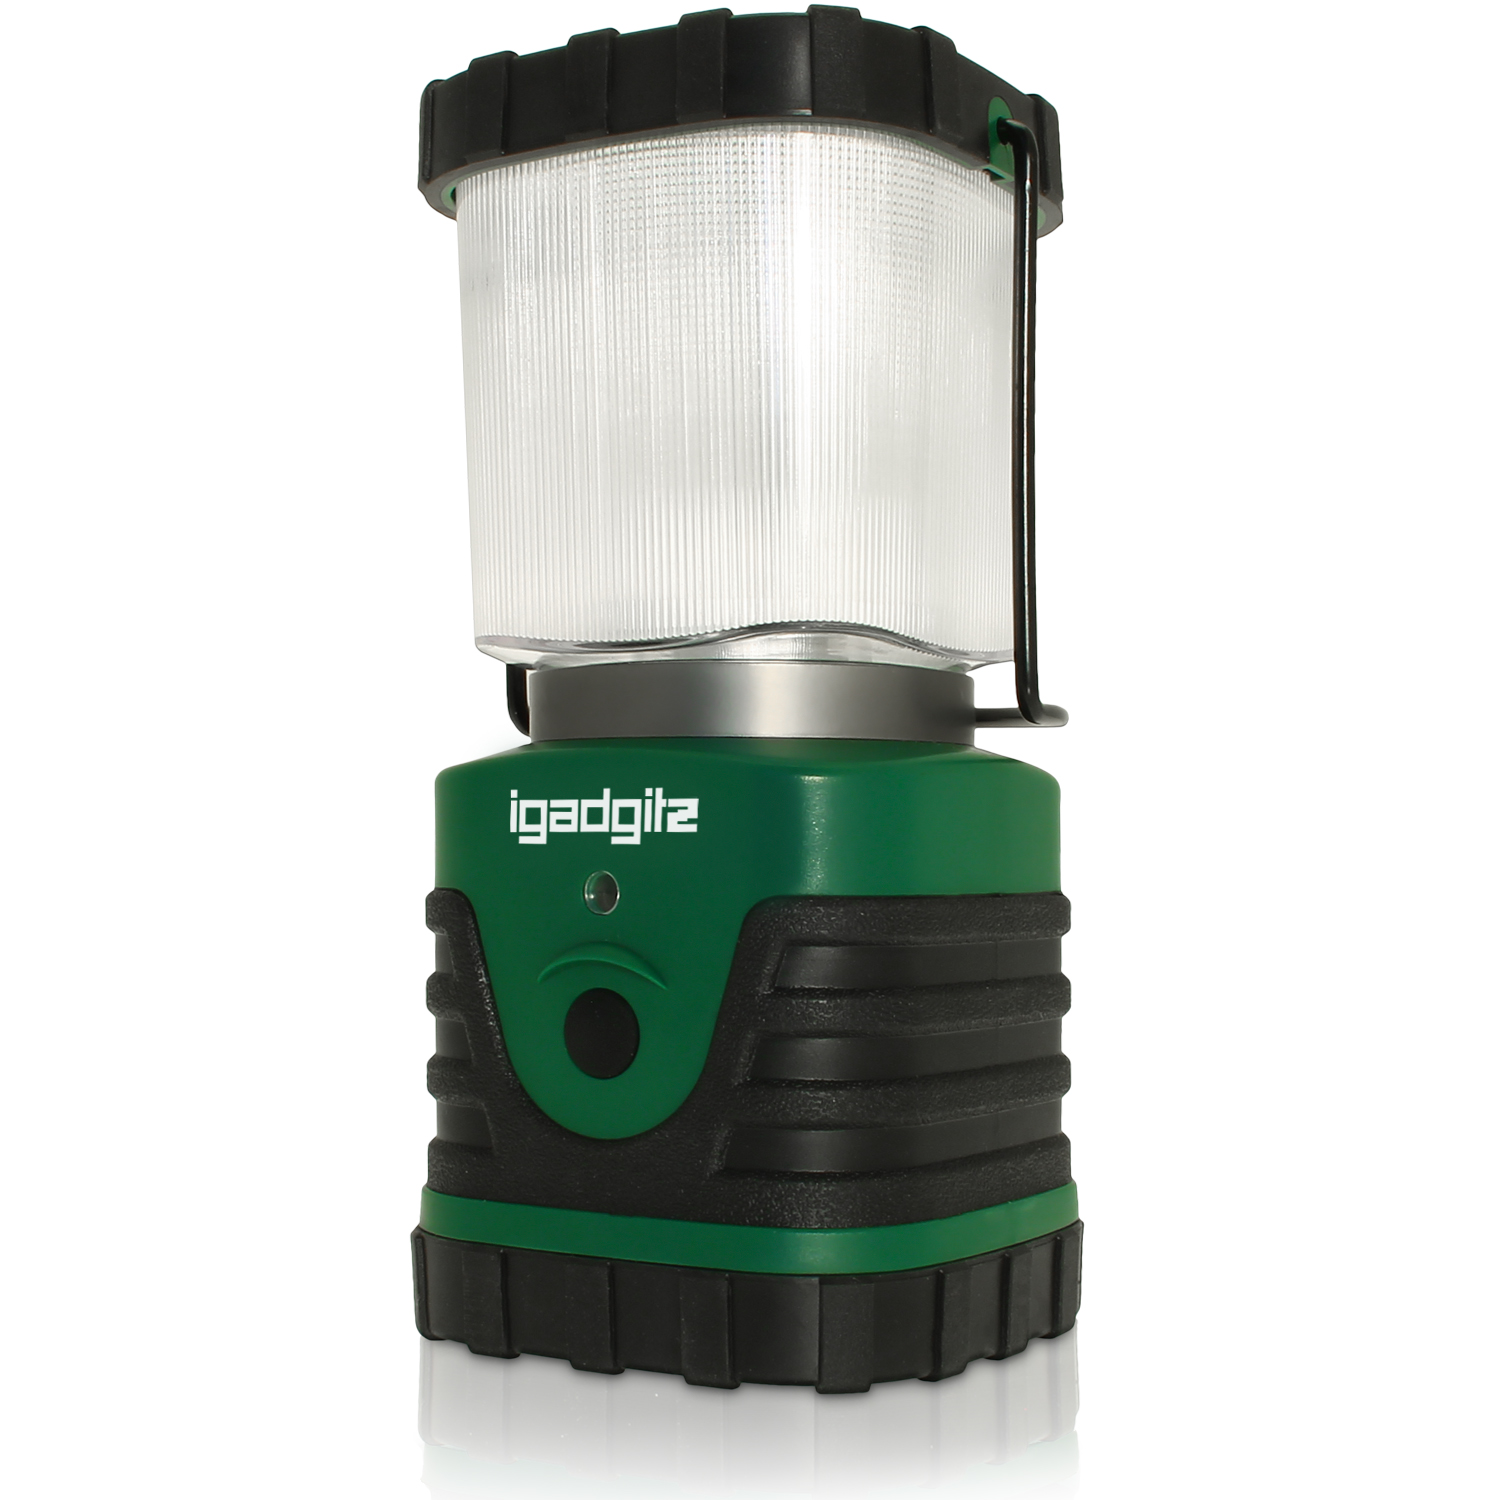 igadgitz Xtra Lumin 300 Portable 300lm LED Lantern with 1yr warranty